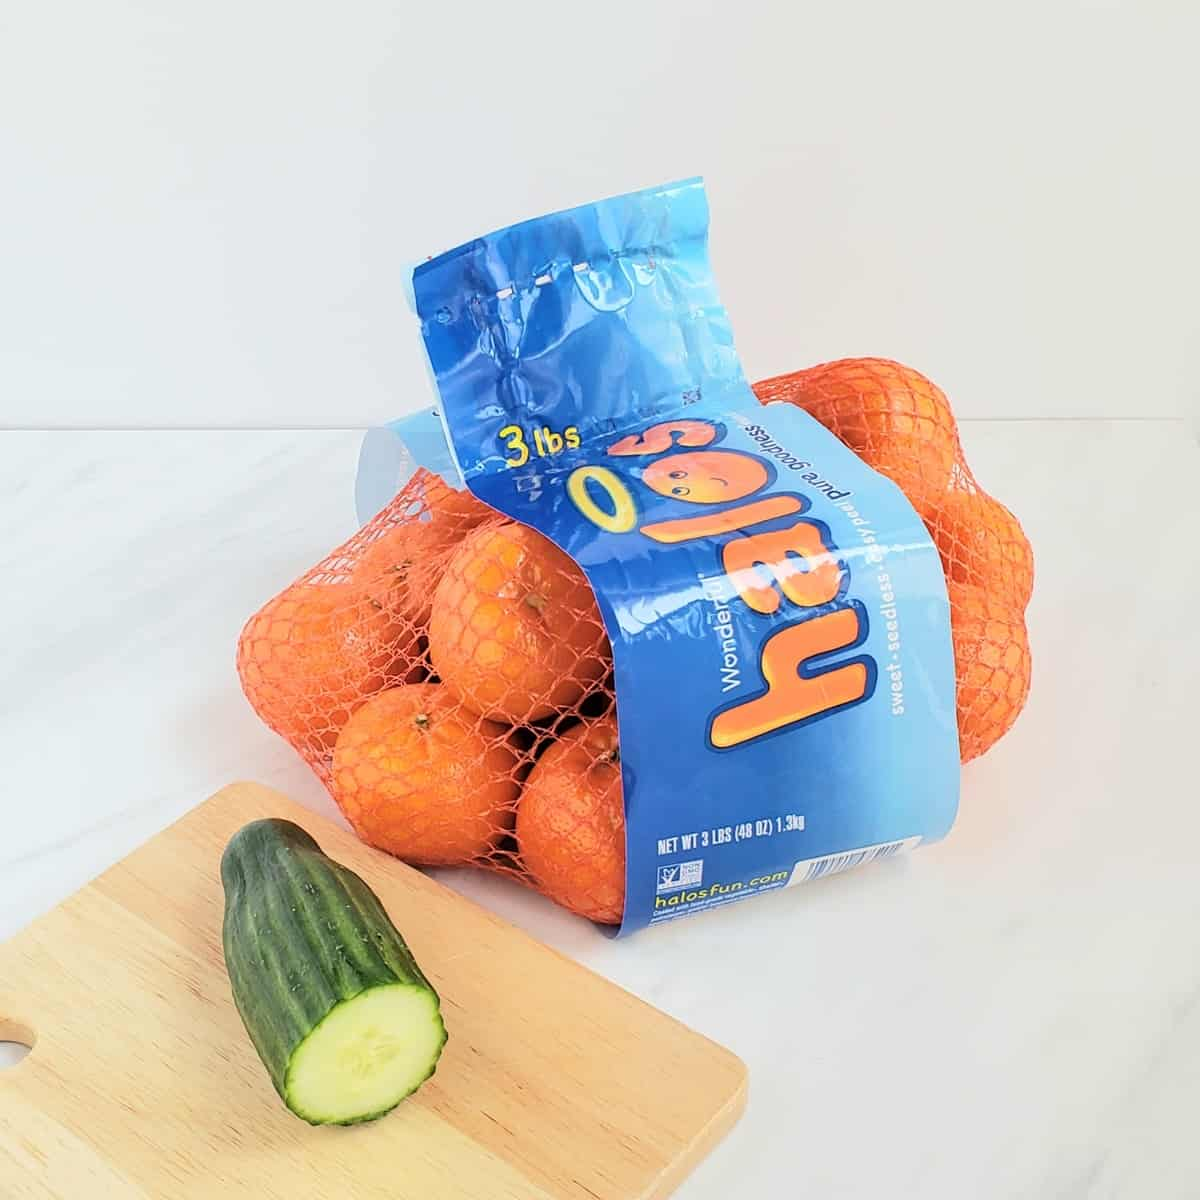 Bag of mandarin oranges and a pied of cucumber on a wooden cutting board